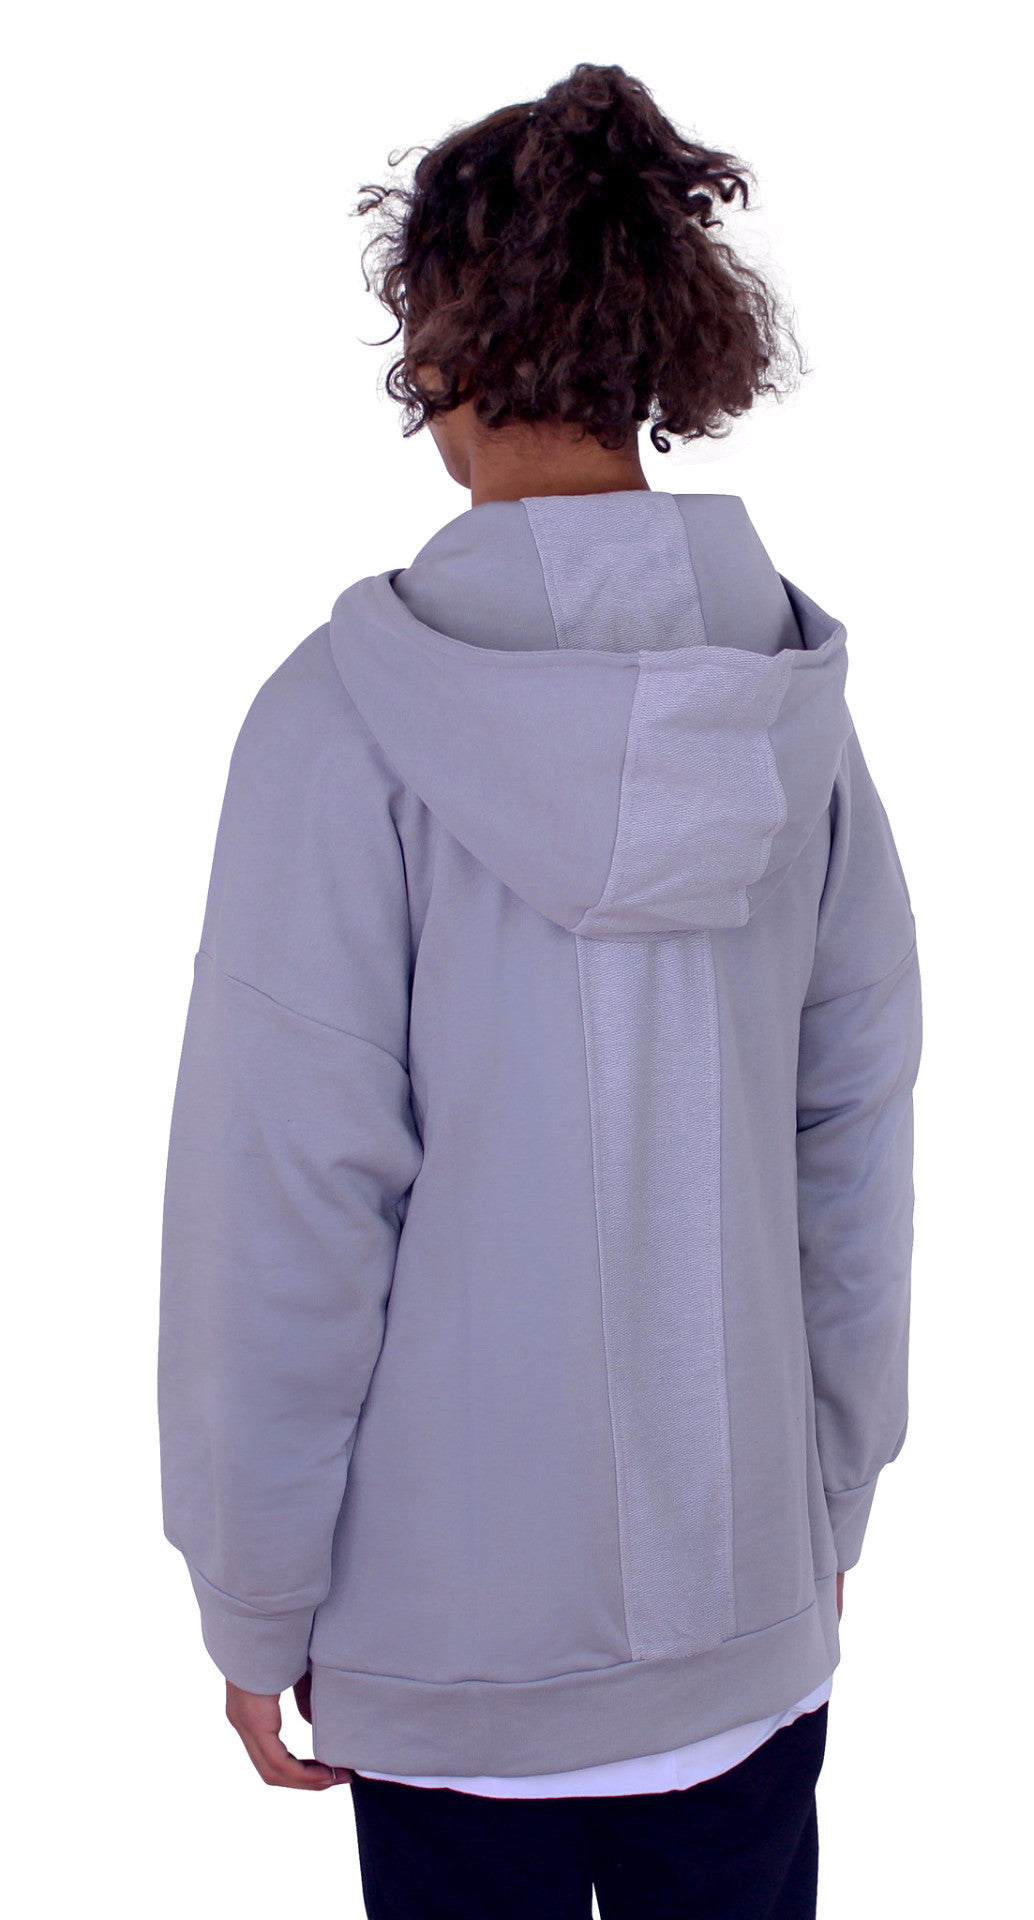 REVERSED BACK PANEL HOODIE - CLOUDY GREY